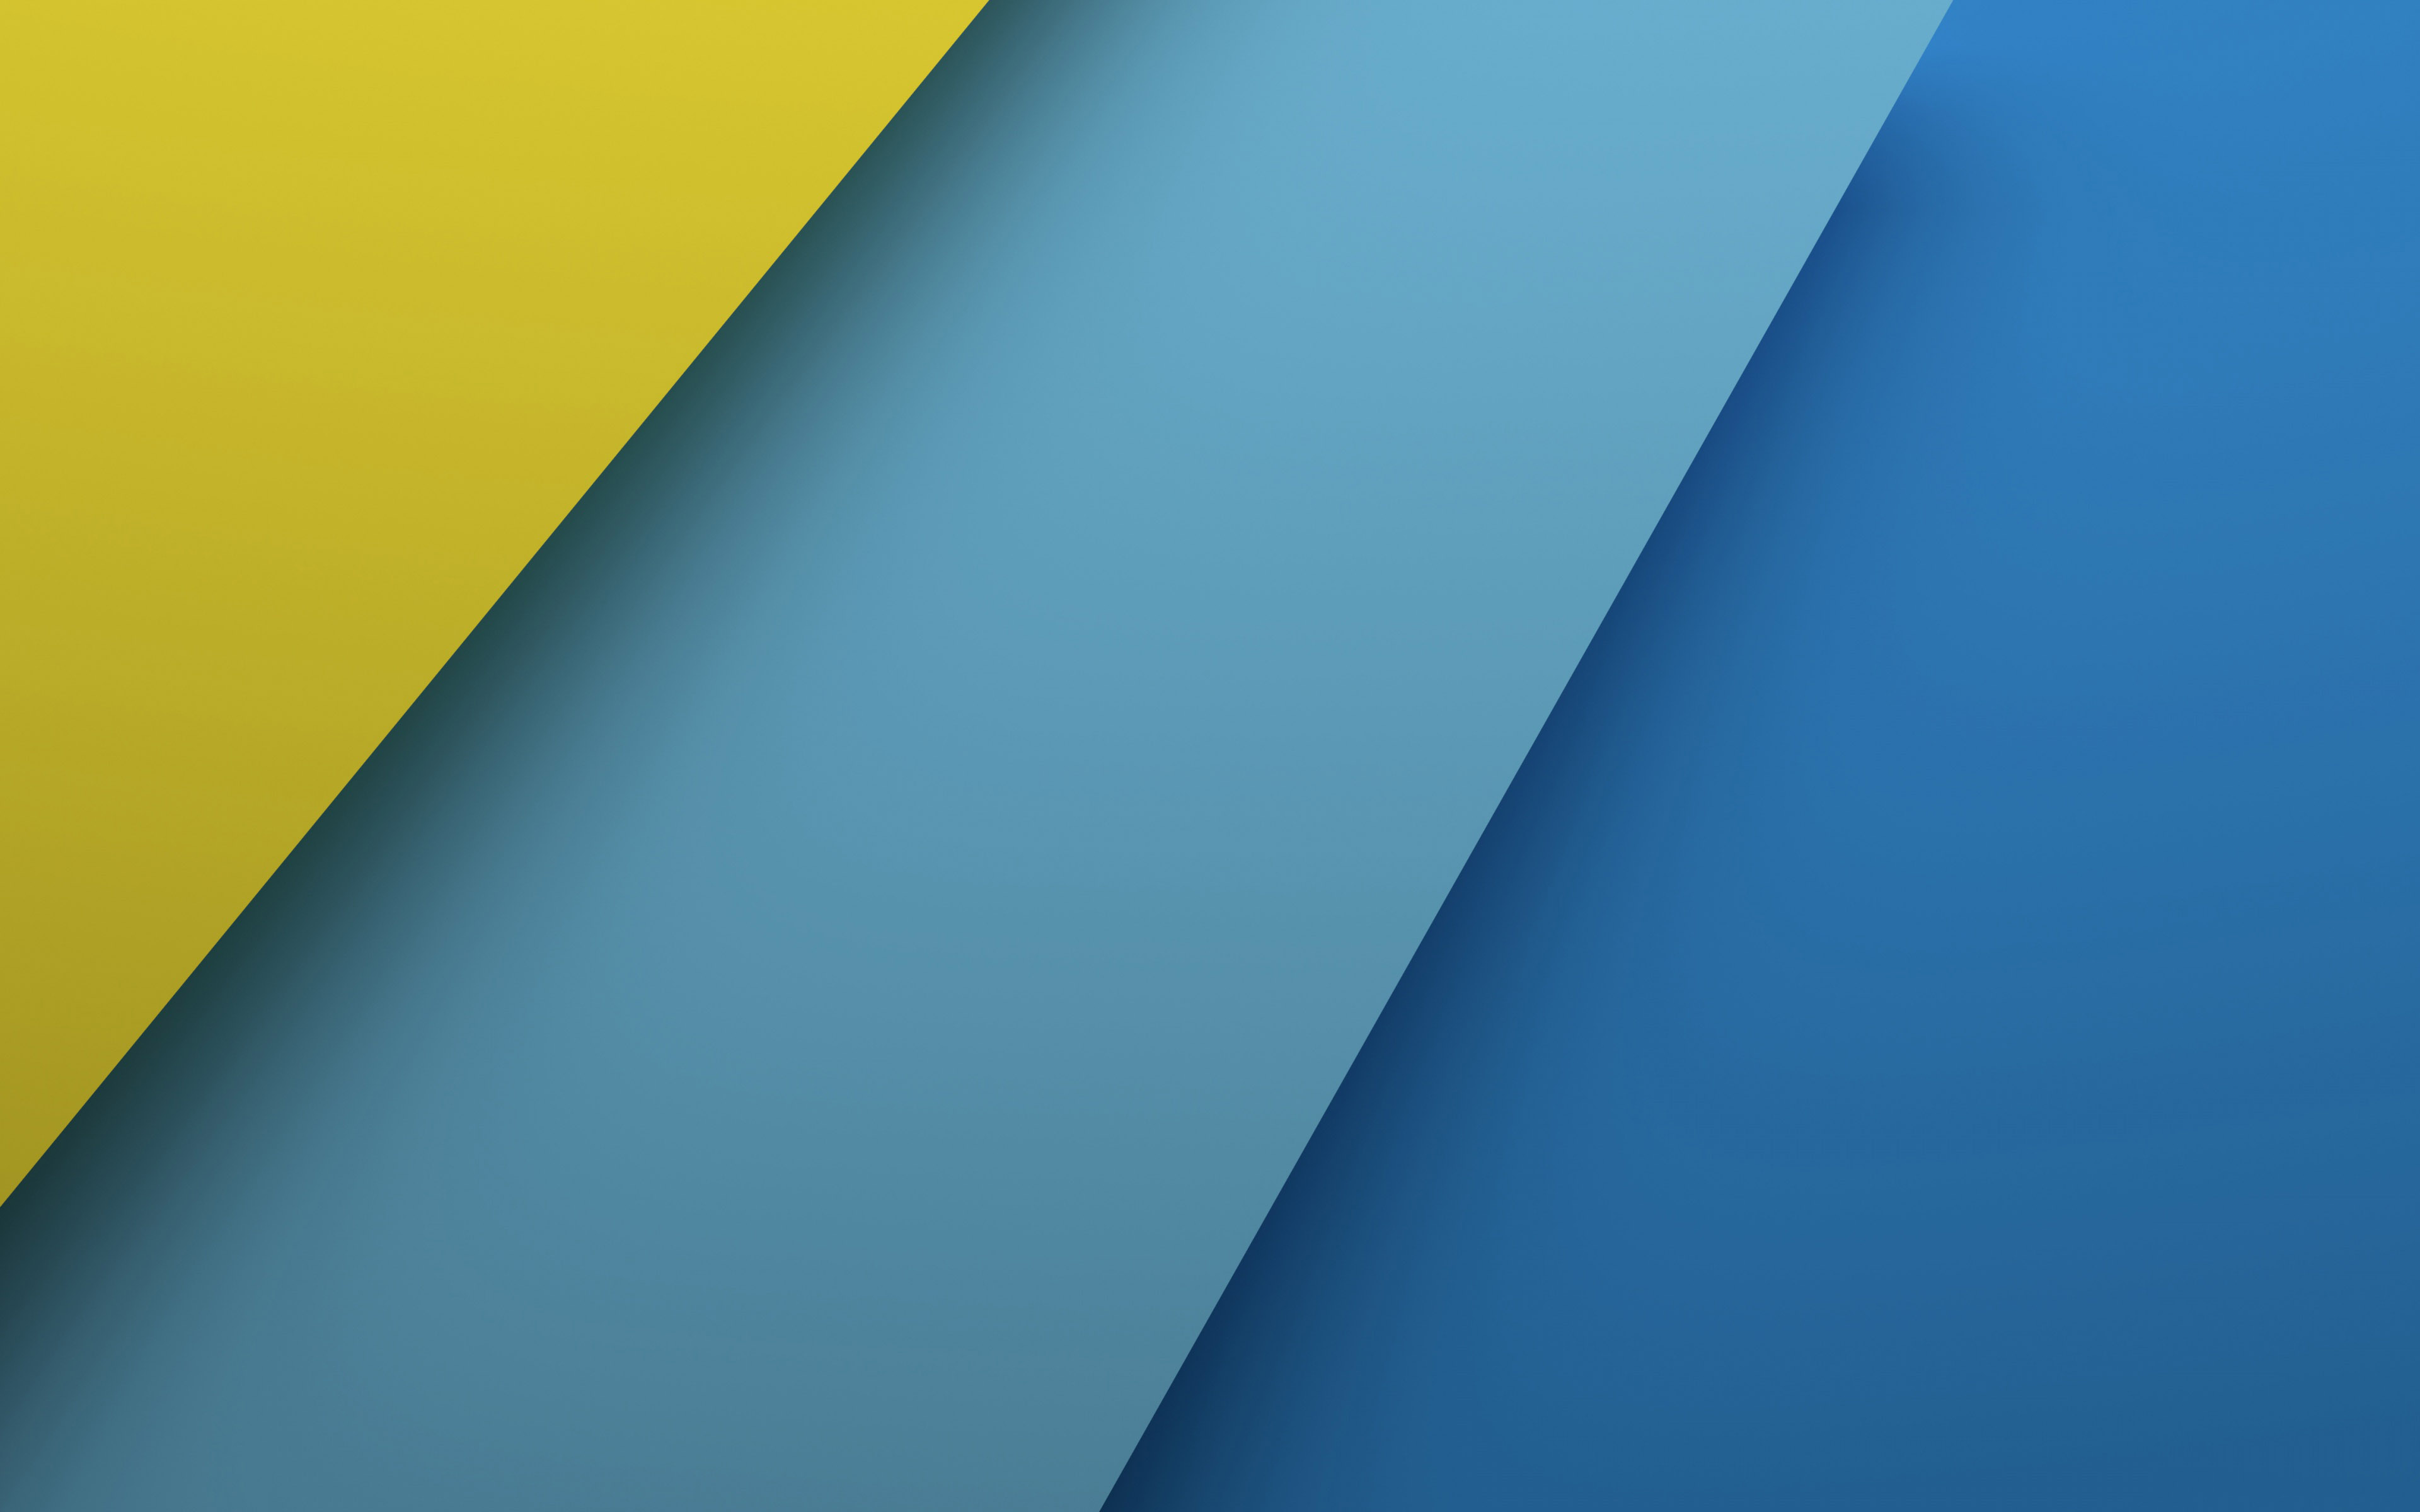 Blue And Yellow Wallpaper